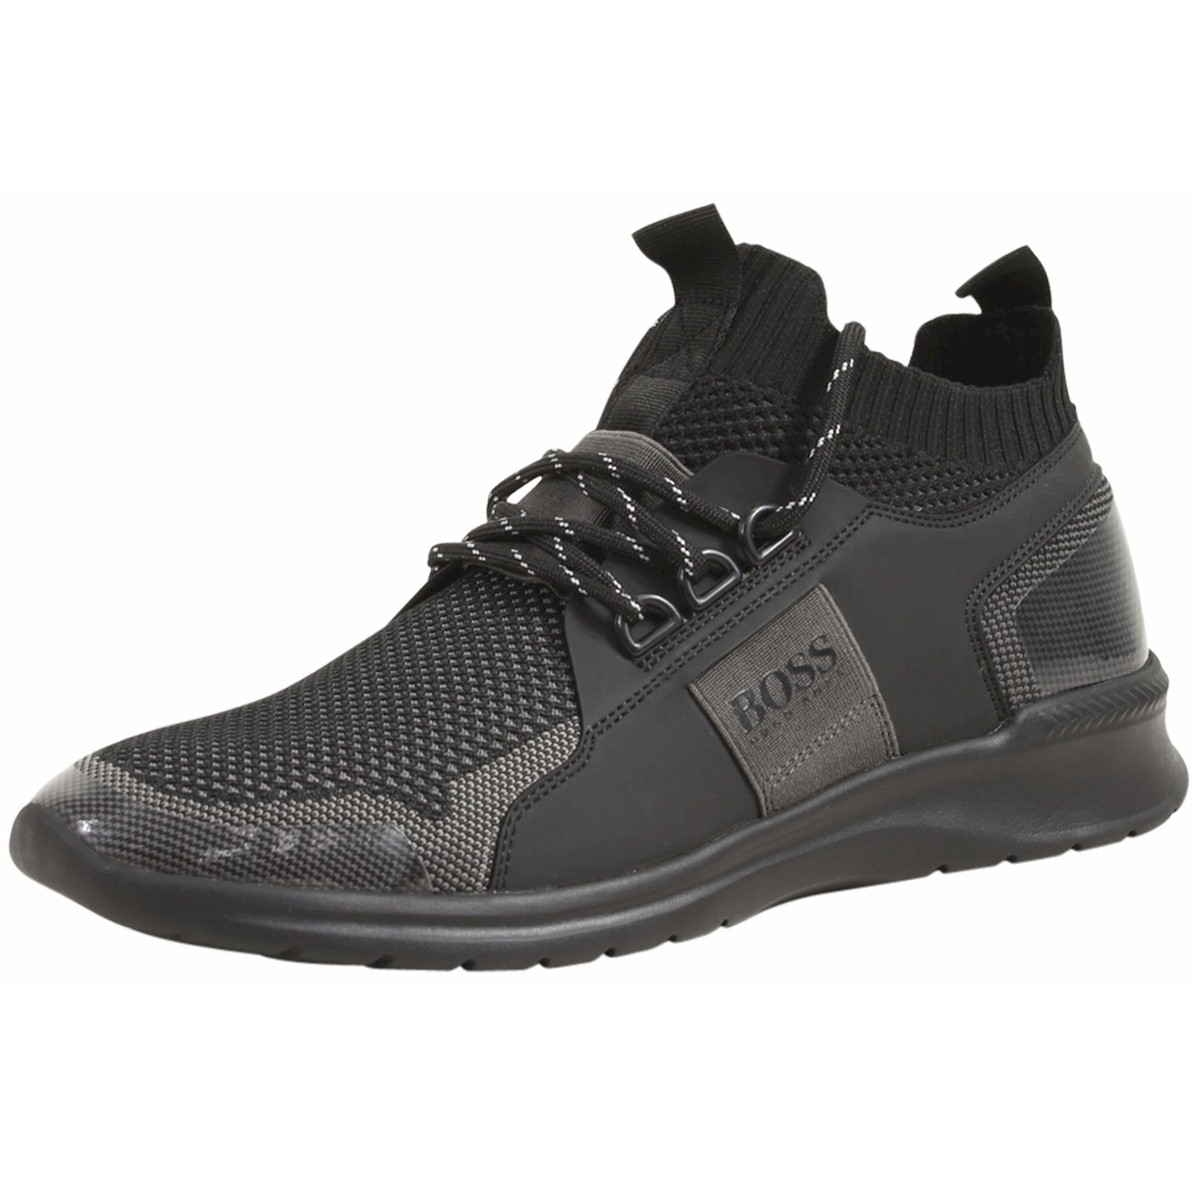 hugo boss men 39 s extreme running sneakers shoes ebay. Black Bedroom Furniture Sets. Home Design Ideas